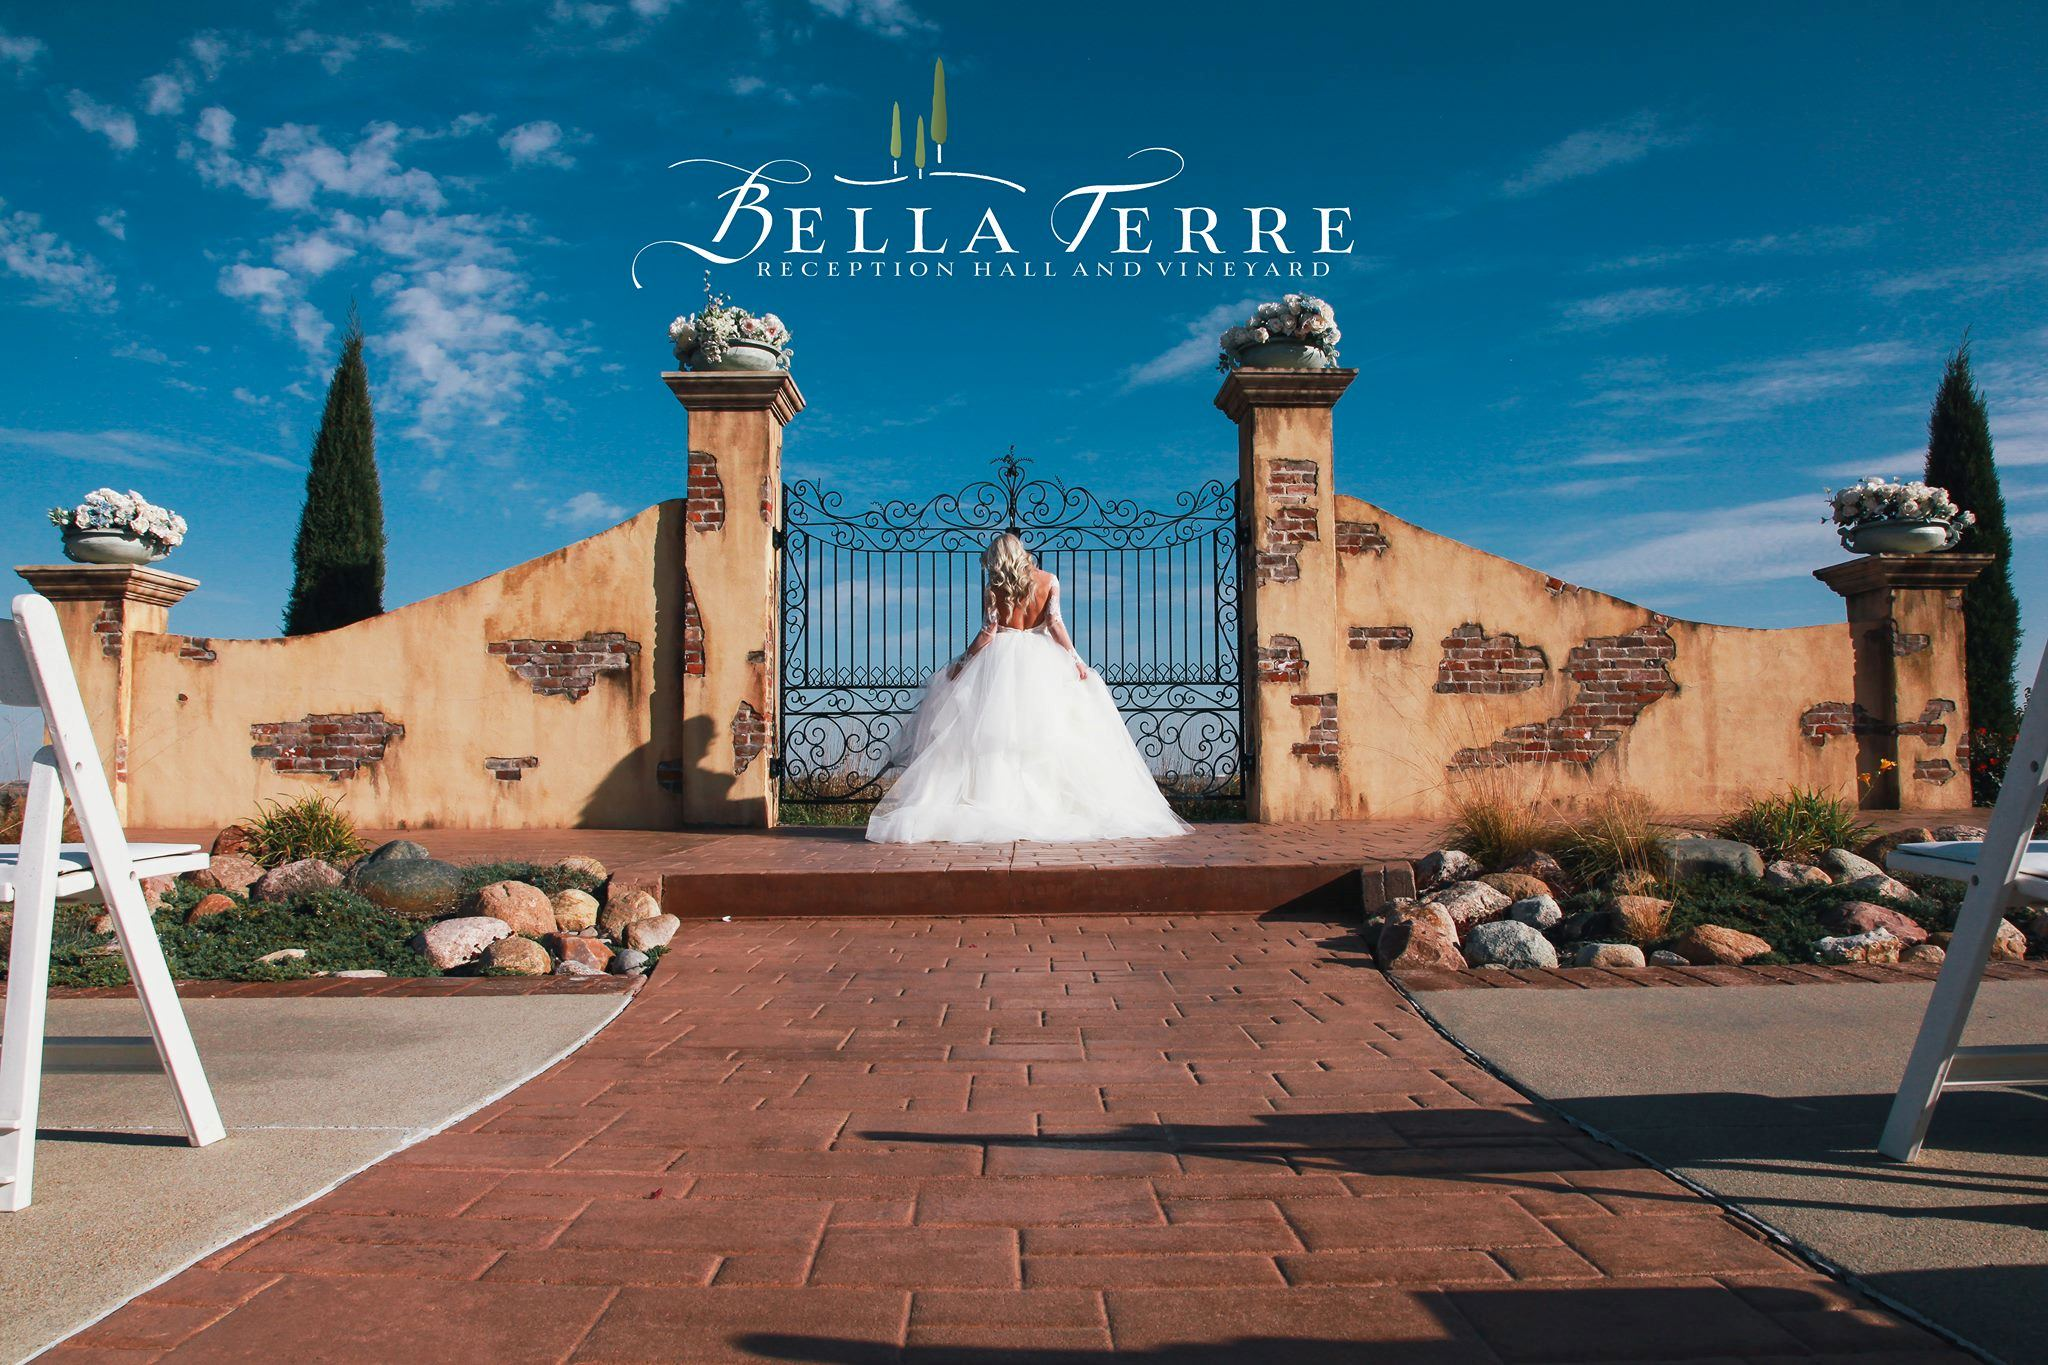 Bella Terre Reception Hall And Vineyard - 5